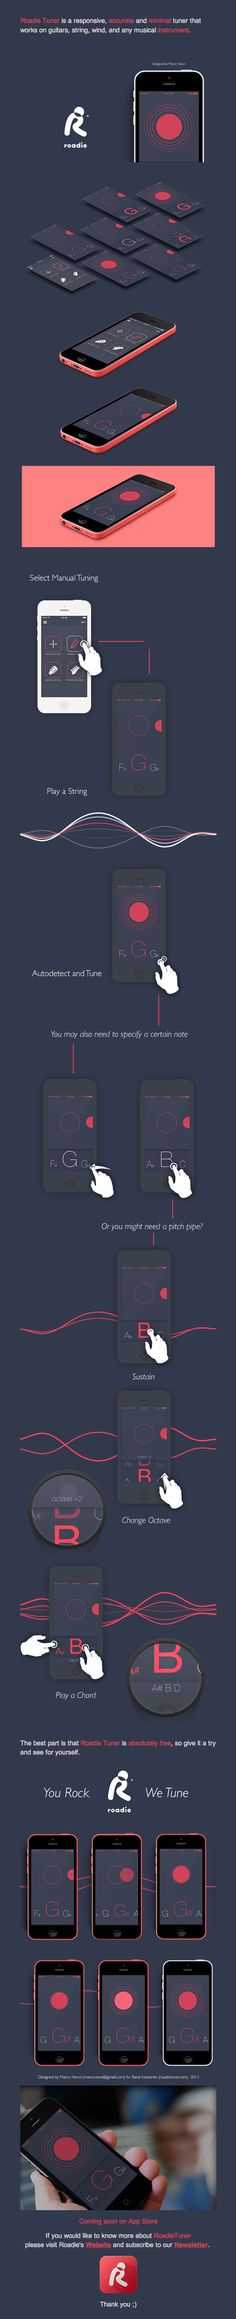 Unique App Design, Roadie Tuner via @jordanevans96 #App #Design